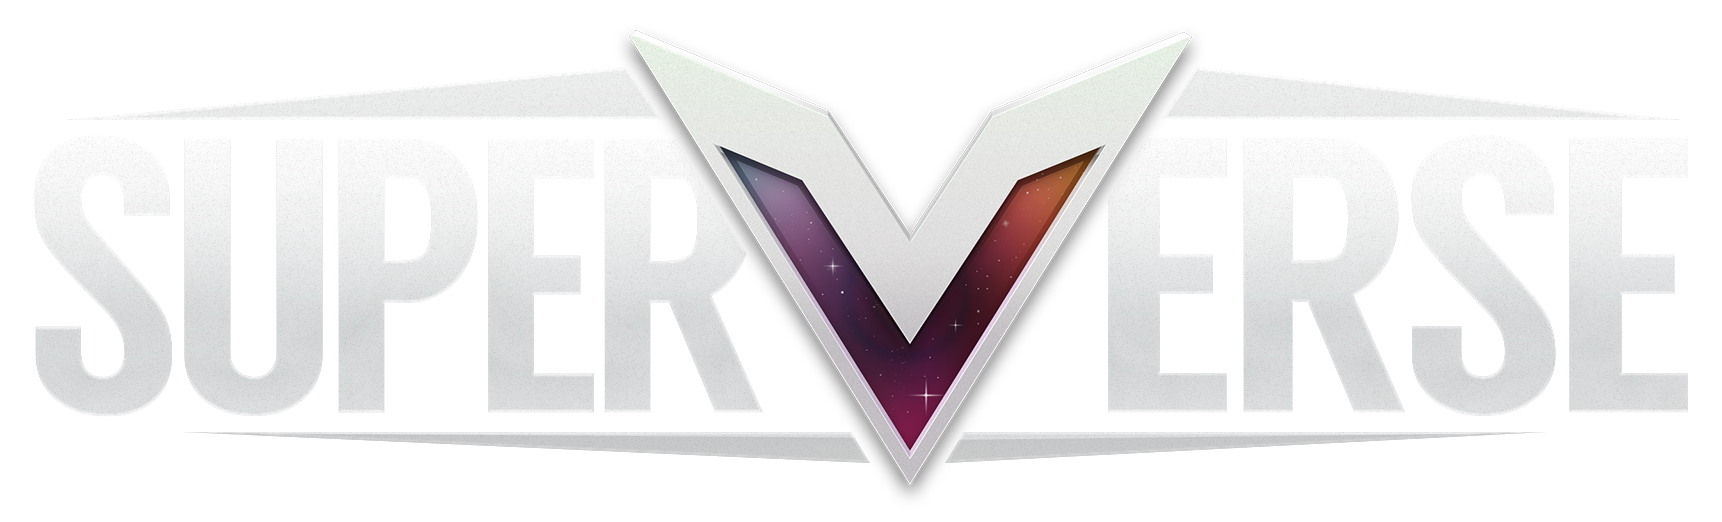 SUPERVERSE logo (high-res, transparent background, PNG)